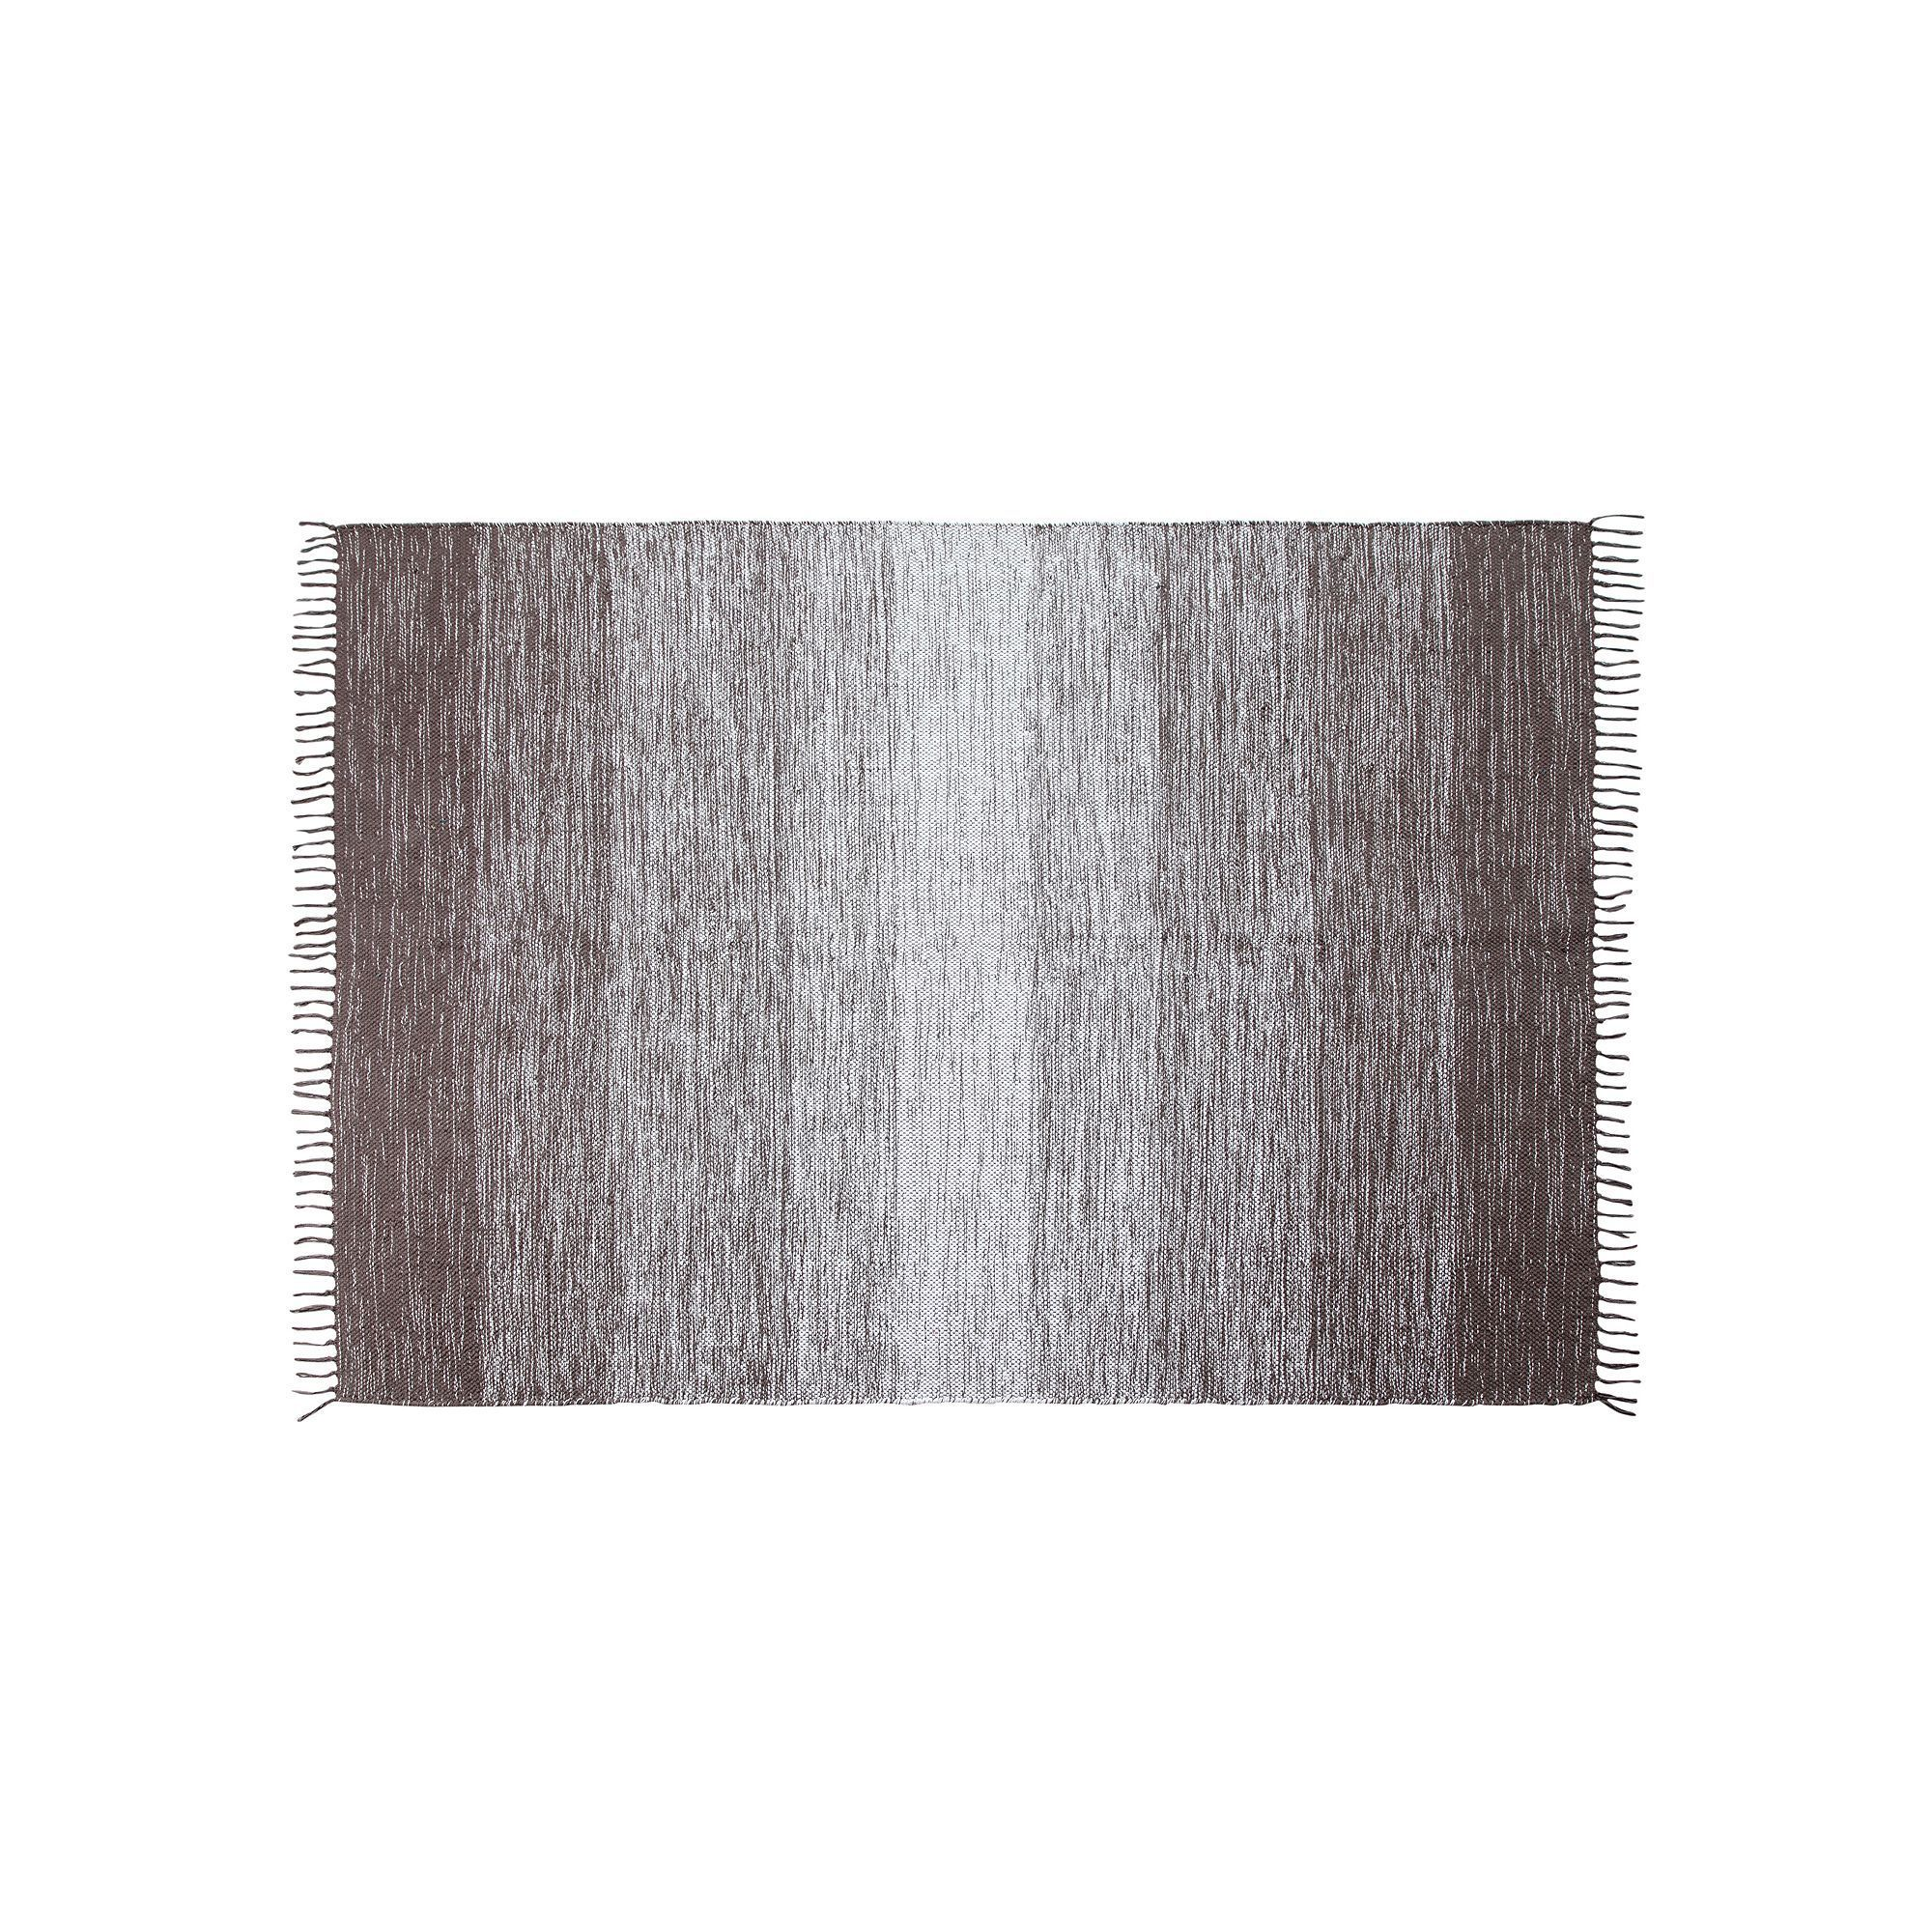 Chesapeake Cotton Ombre Striped Rug, Med Grey